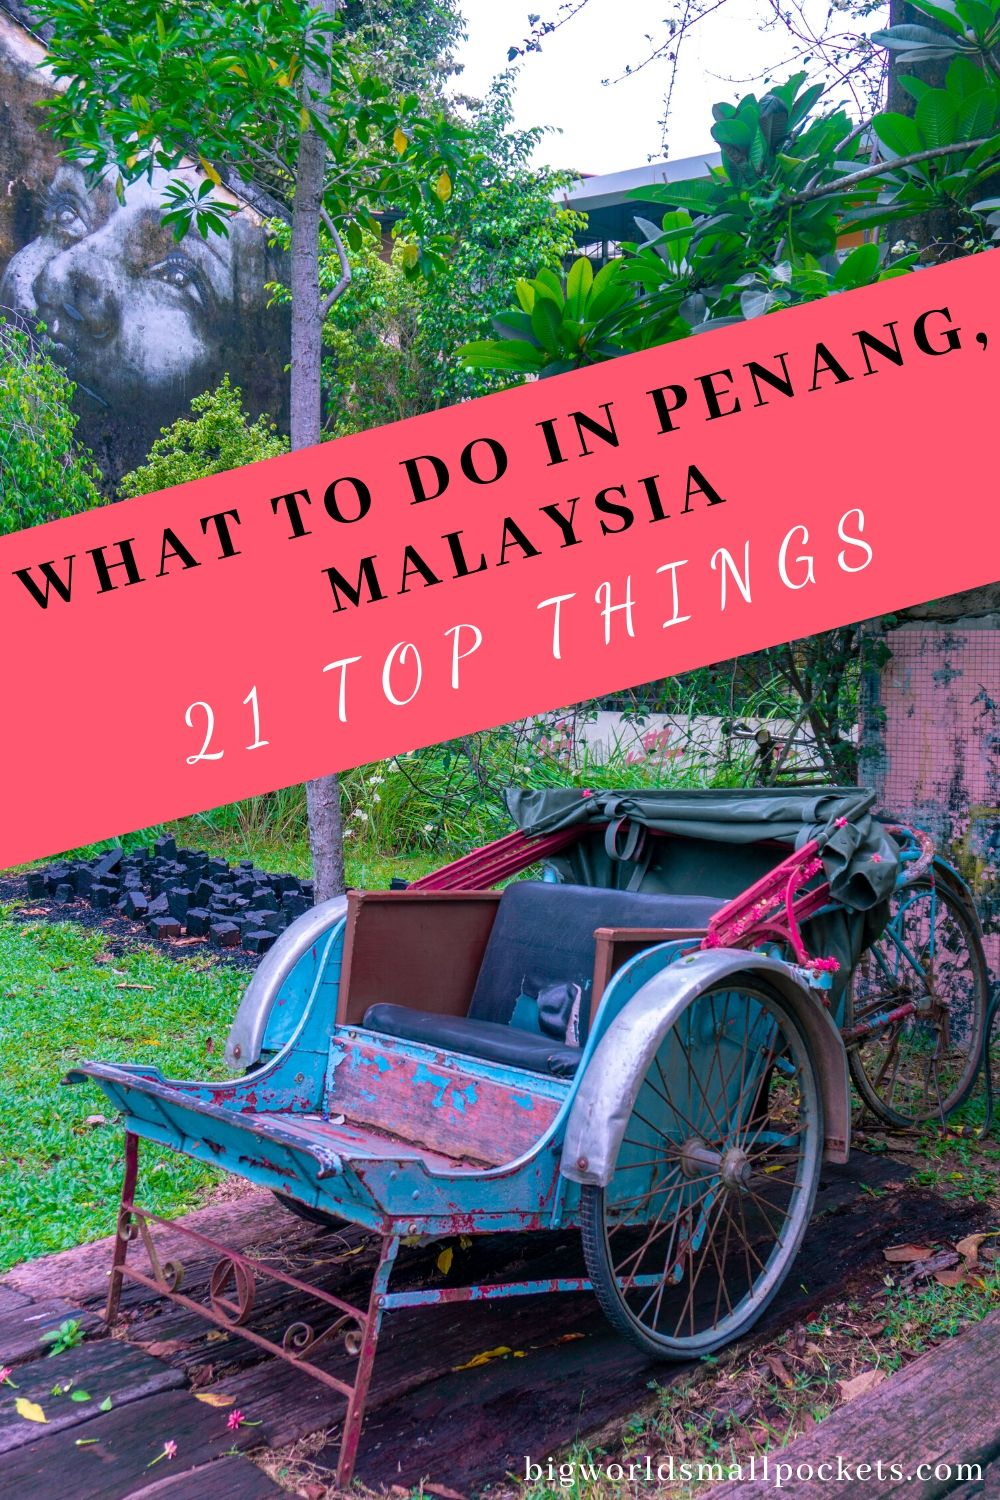 What To Do in Penang, Malaysia